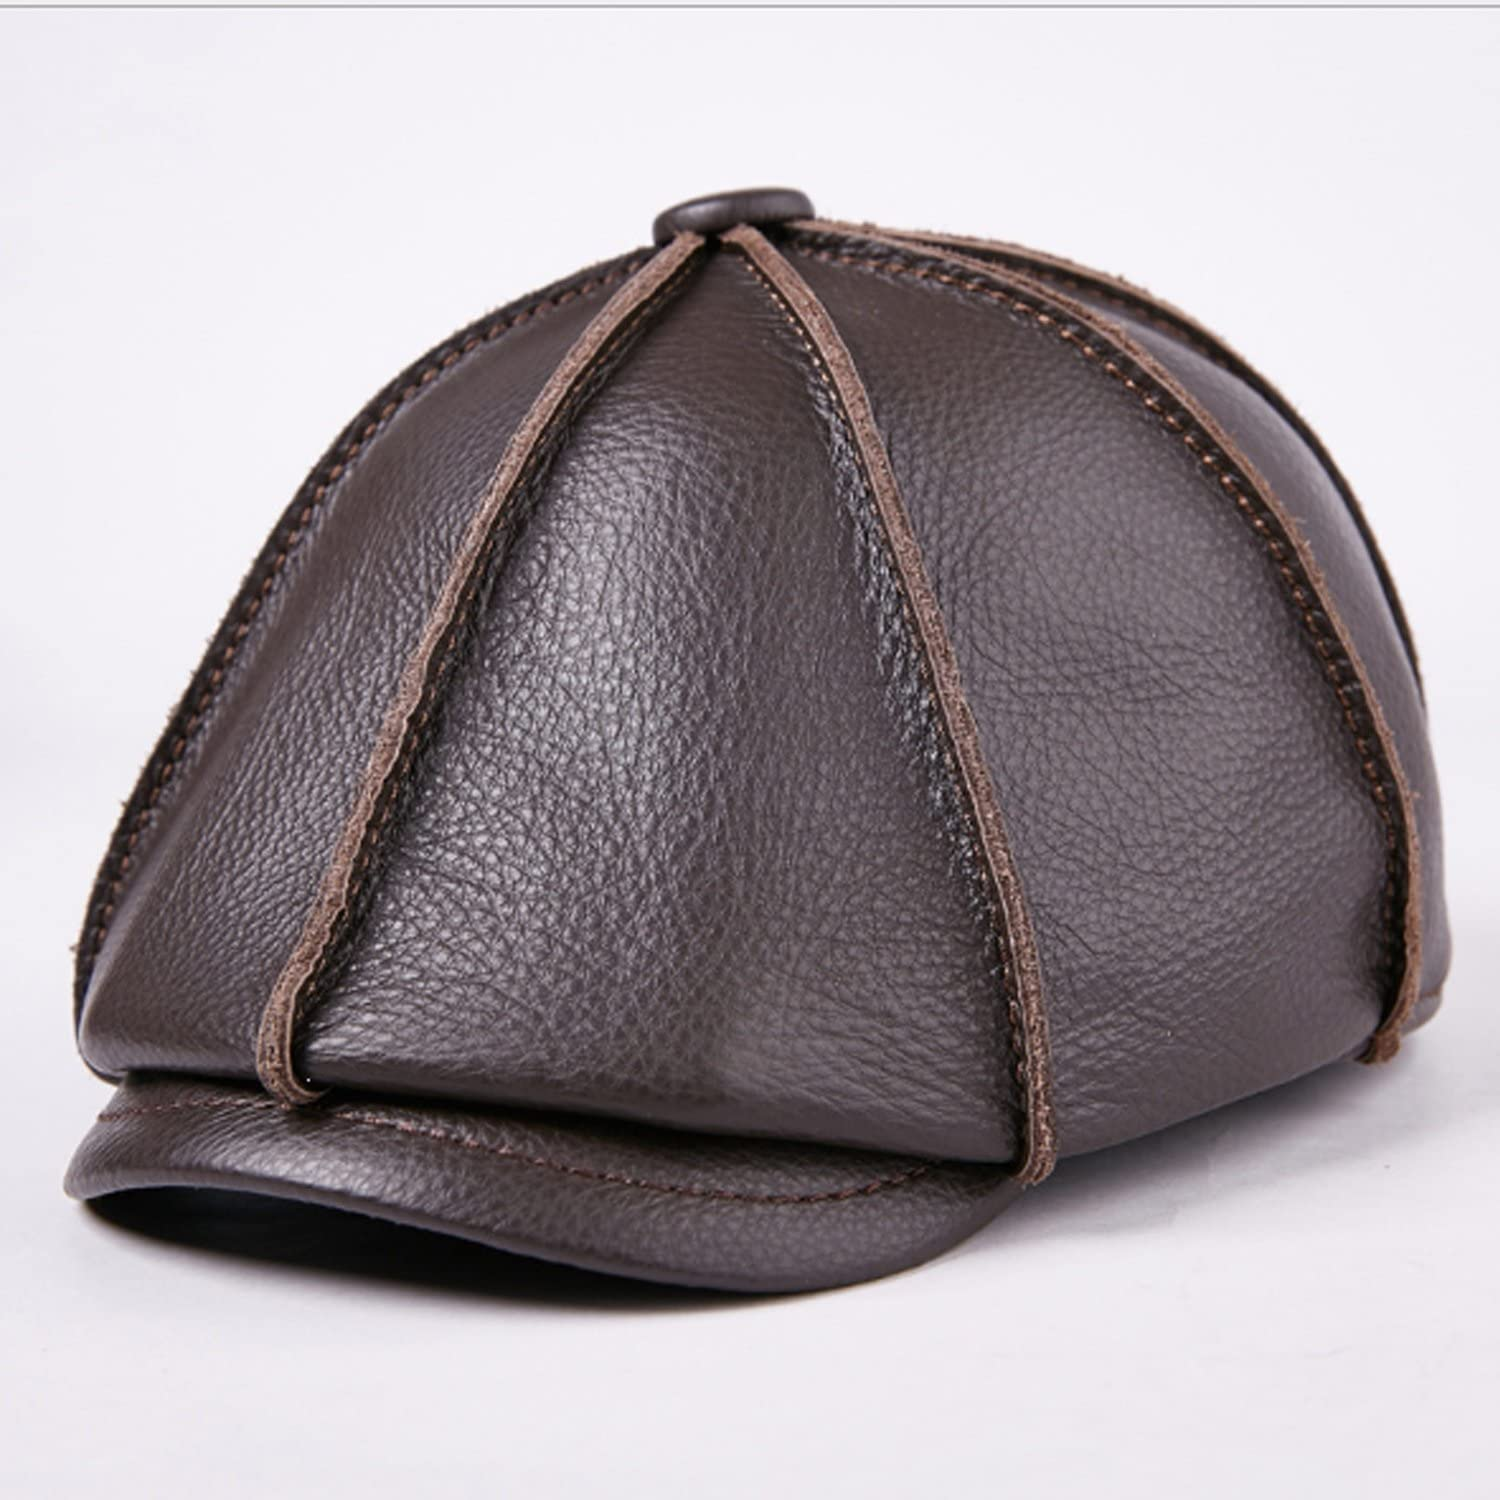 Hat Leather Cowhide Man and Woman Autumn Winter Cap Leisure Fashion Outdoor Octagonal Cap to Keep Warm (color   Dark Brown, Size   XL)